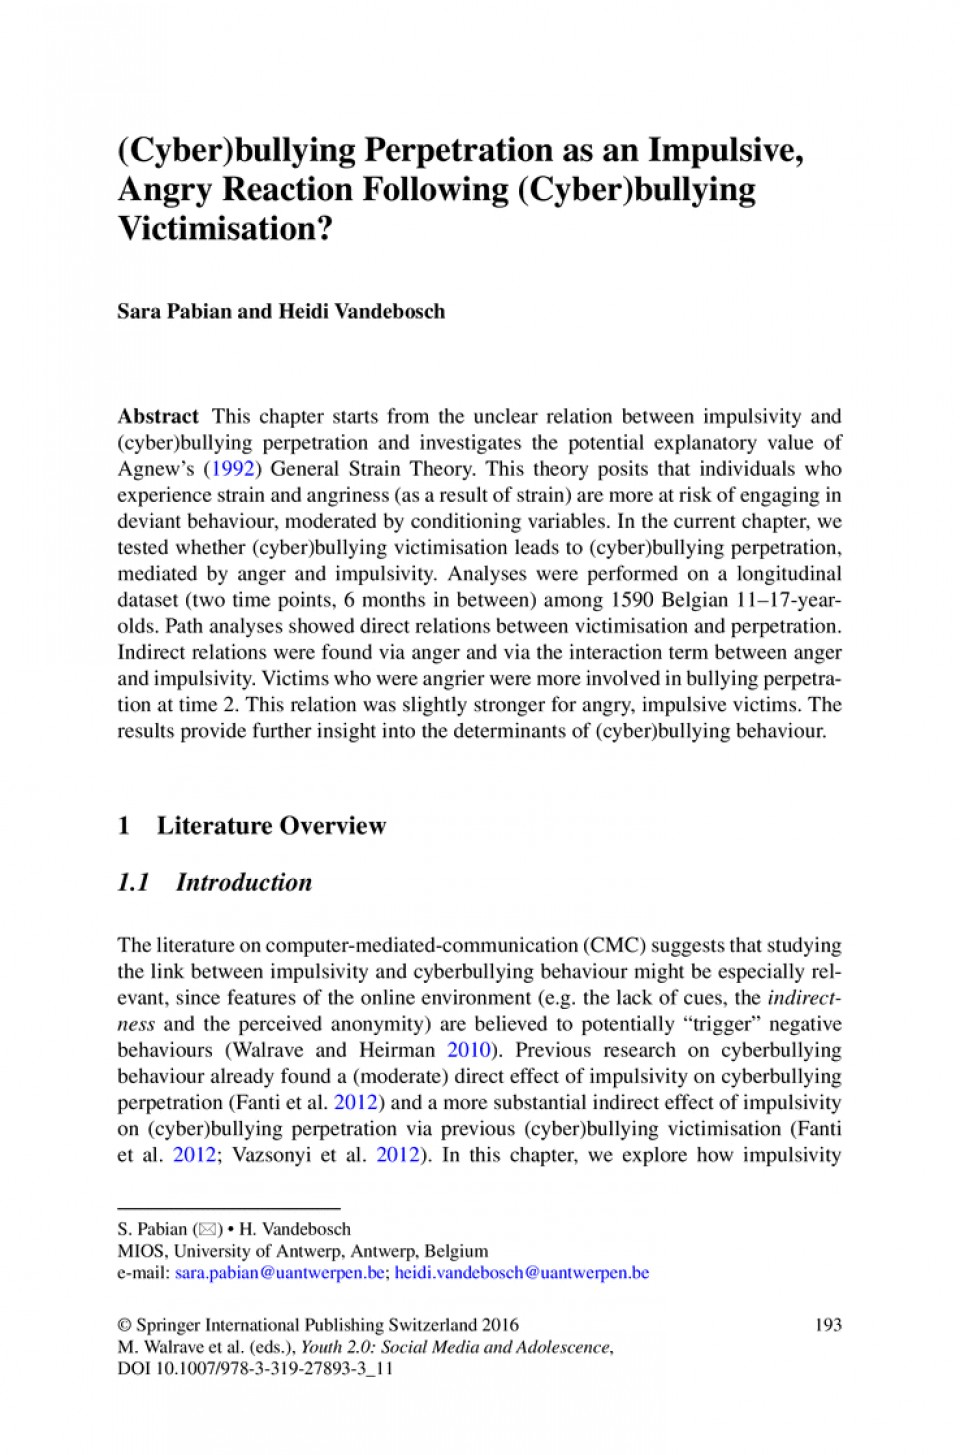 019 Conclusion For Research Paper About Social Media Bullying Essays Cyberbullying Cover Awful 960